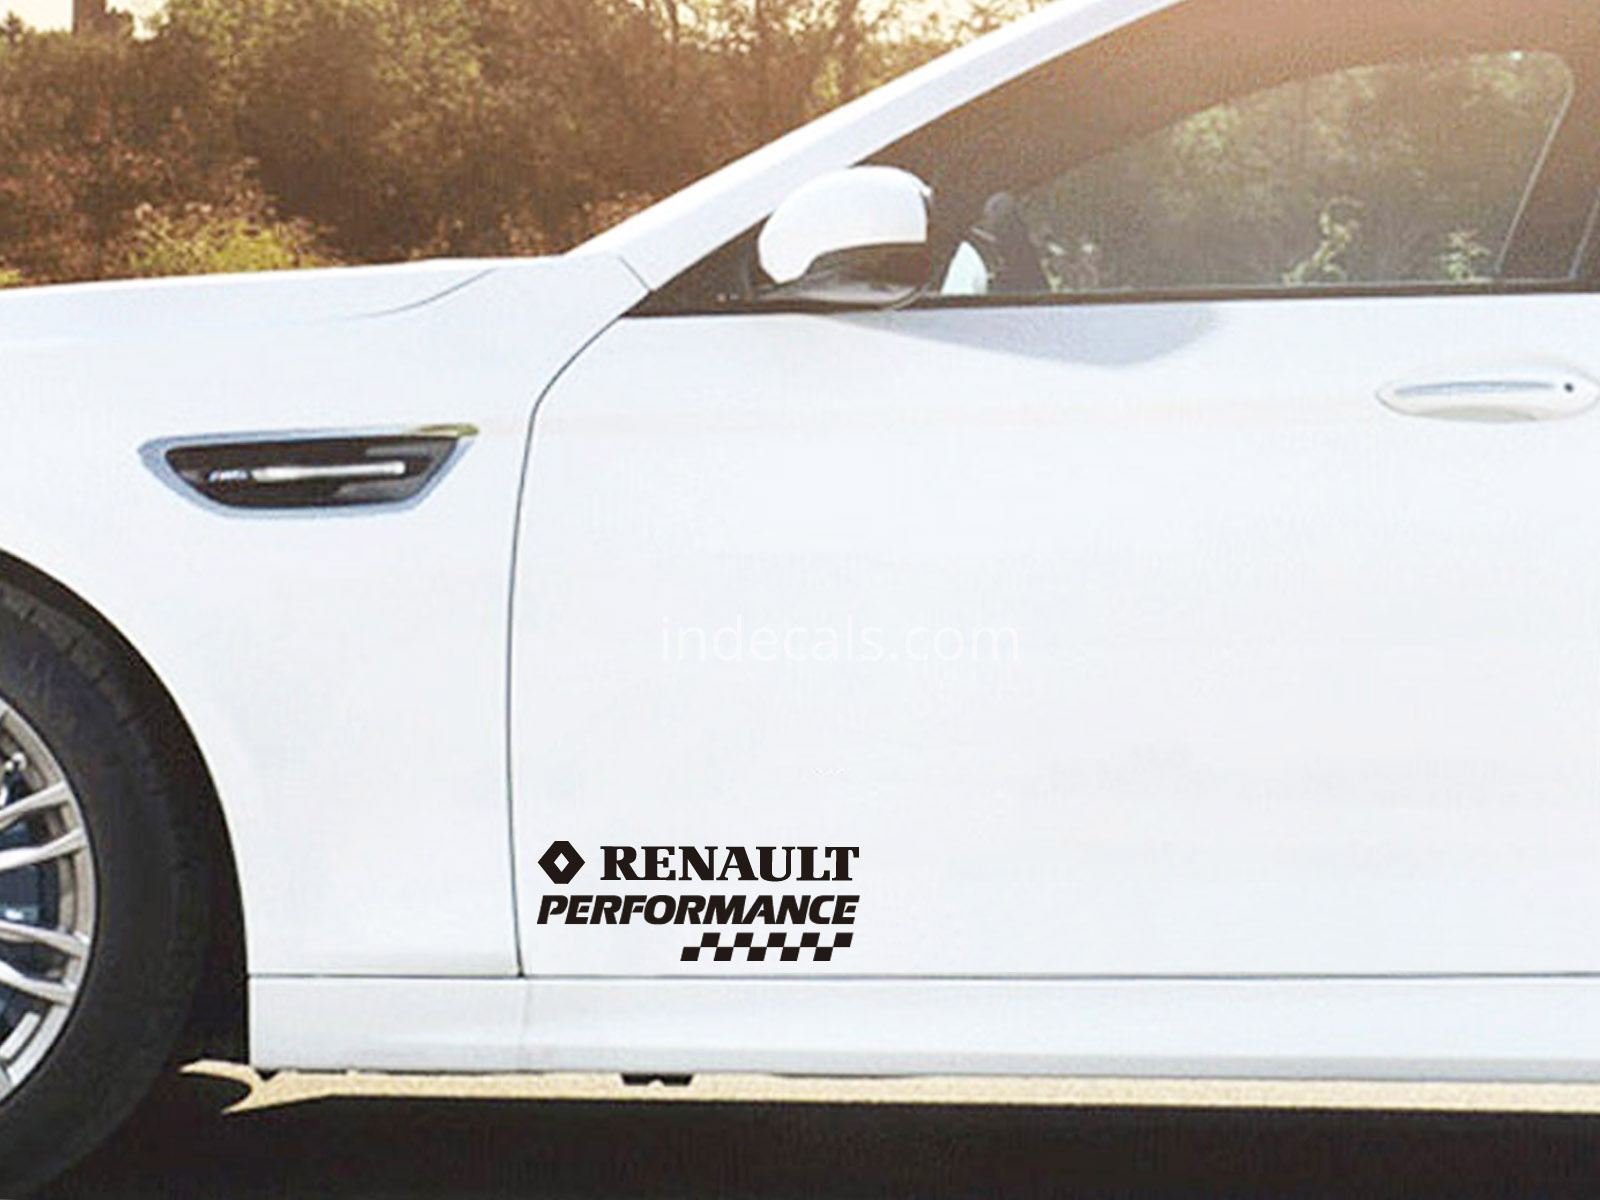 2 x Renault Performance Stickers for Doors - Black